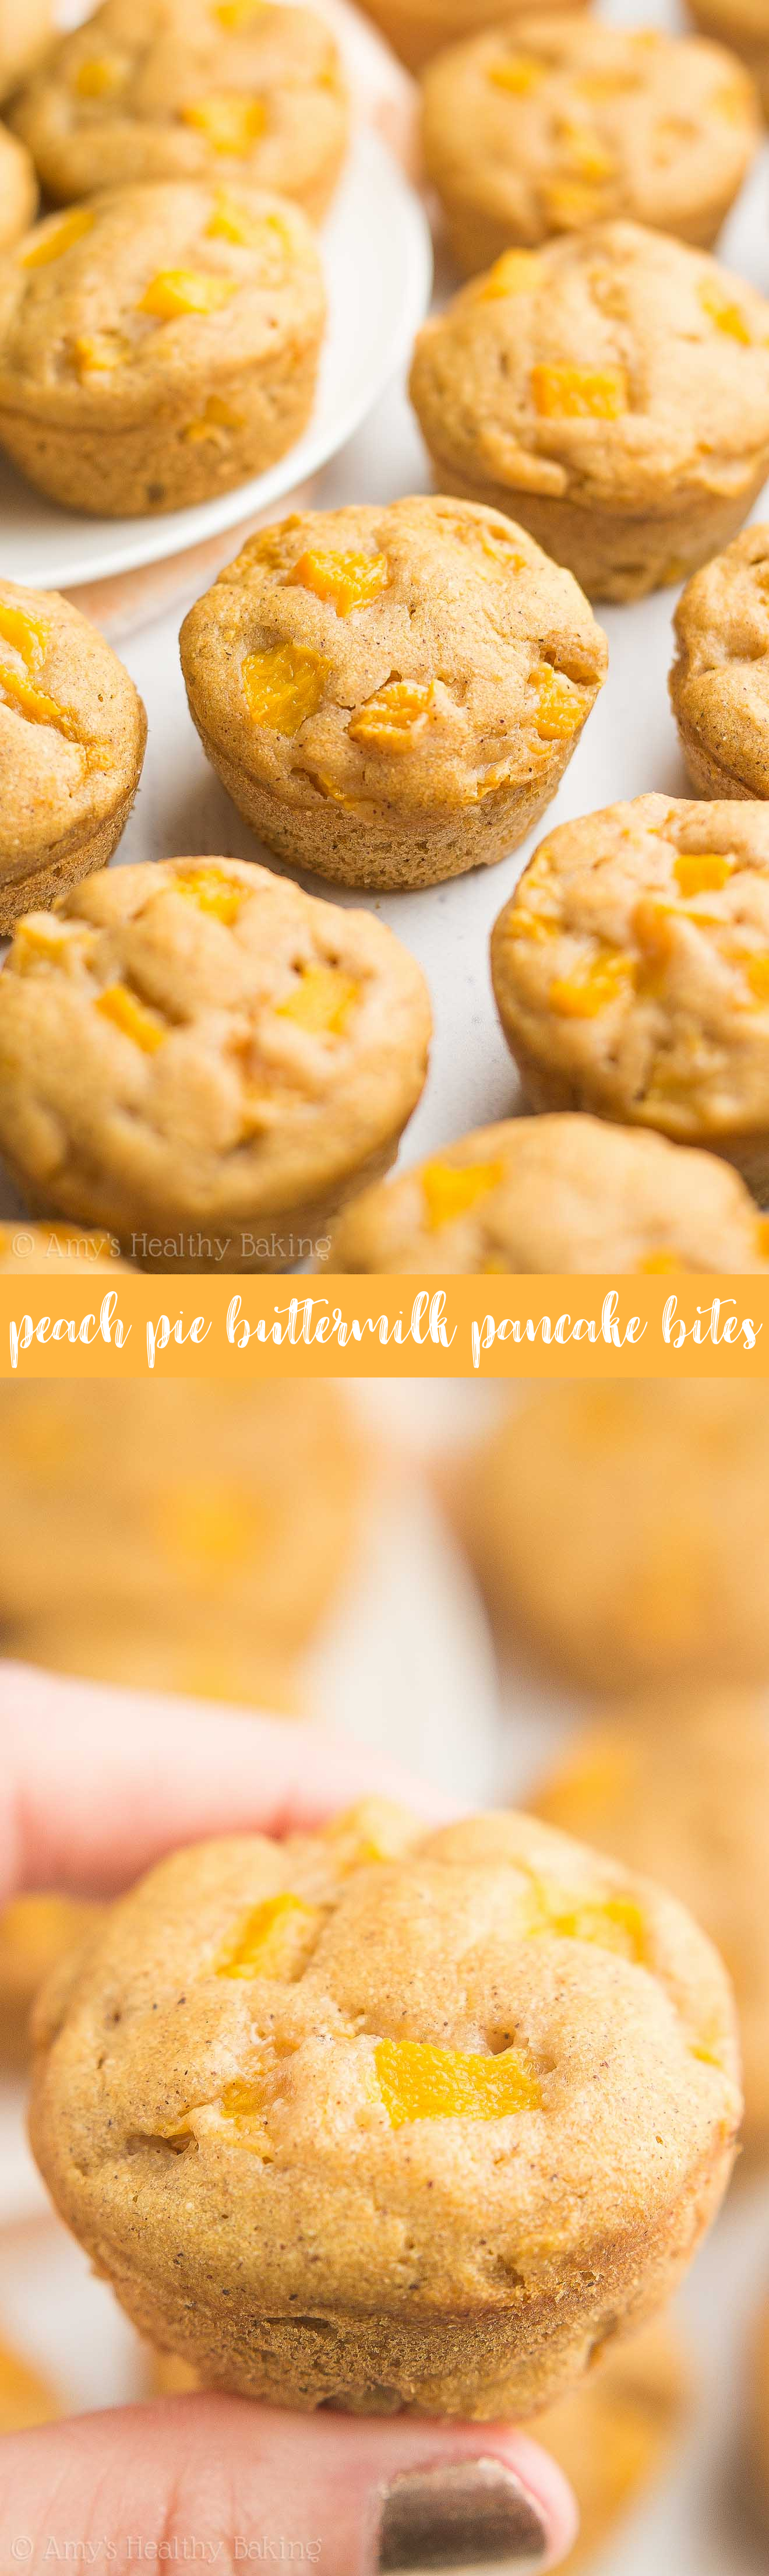 Healthy Peach Pie Buttermilk Pancake Bites -- only 29 calories! No standing over the stove... You BAKE this pancake batter instead! This kid-friendly recipe is perfect for quick, easy breakfasts & meal prepping!